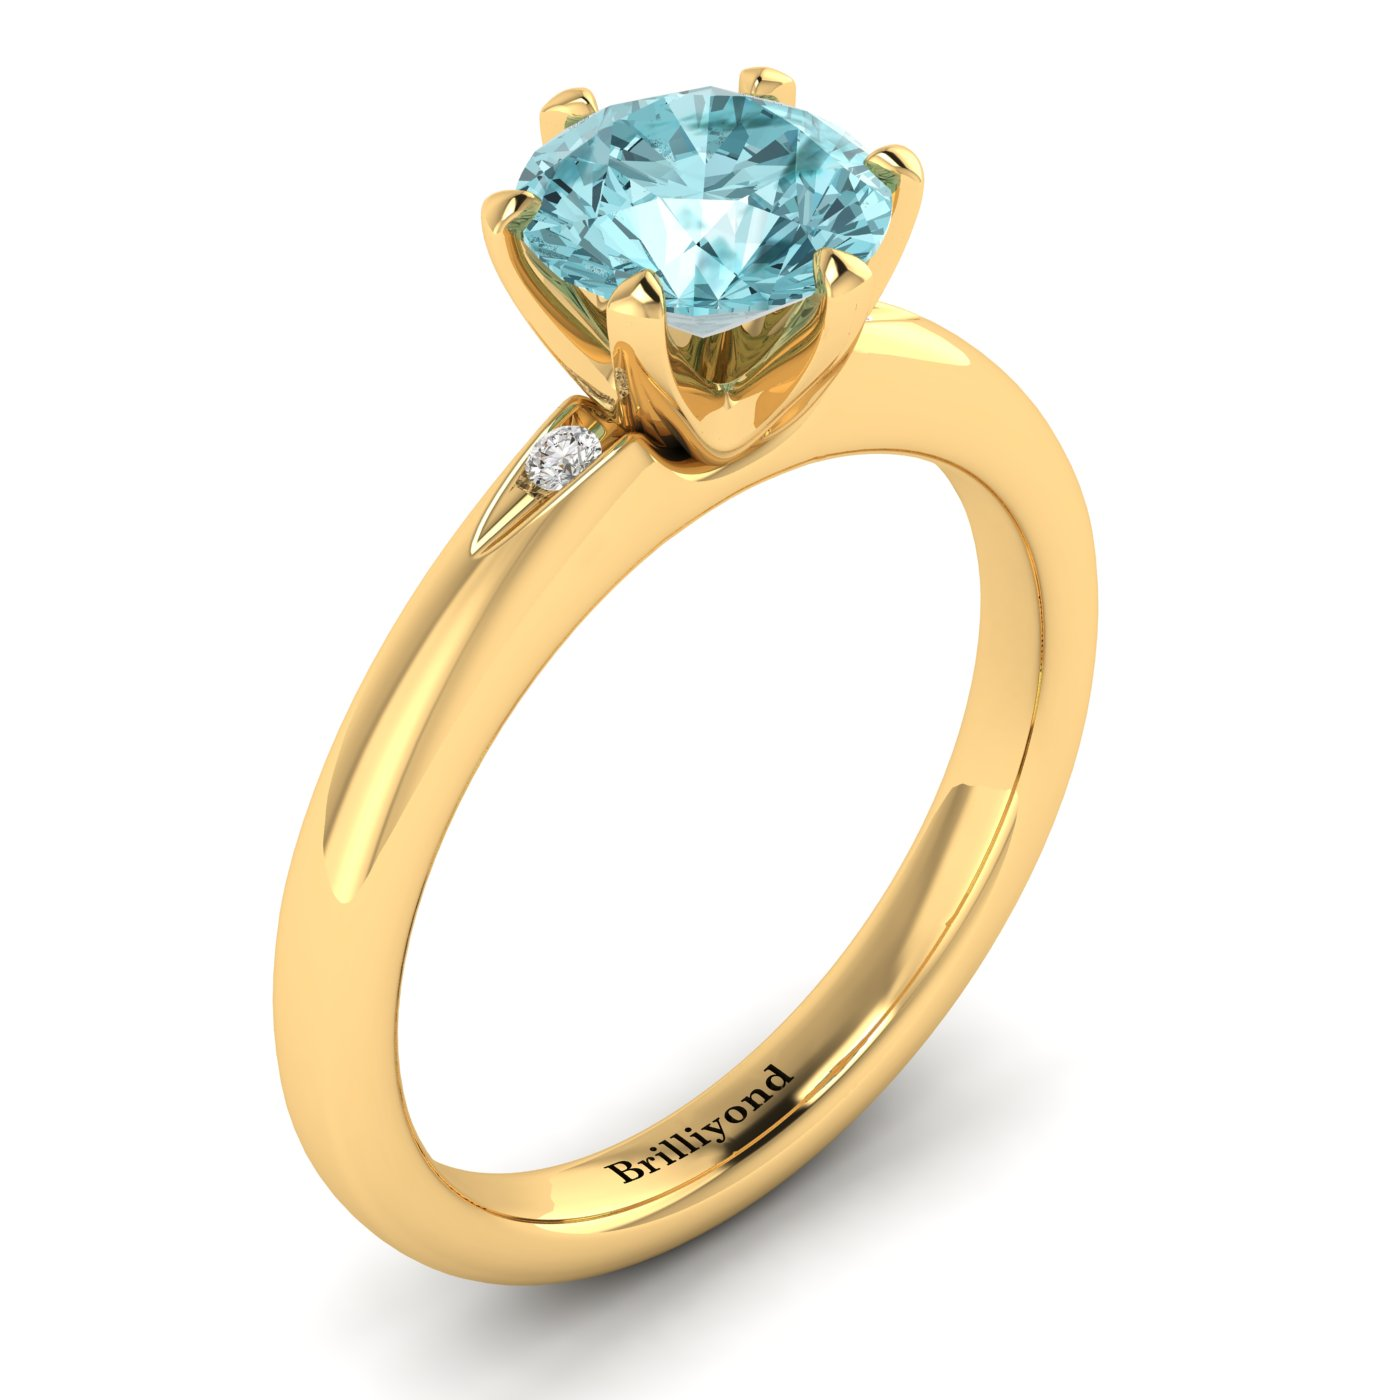 Aquamarine Yellow Gold Solitaire Engagement Ring Byond_image2